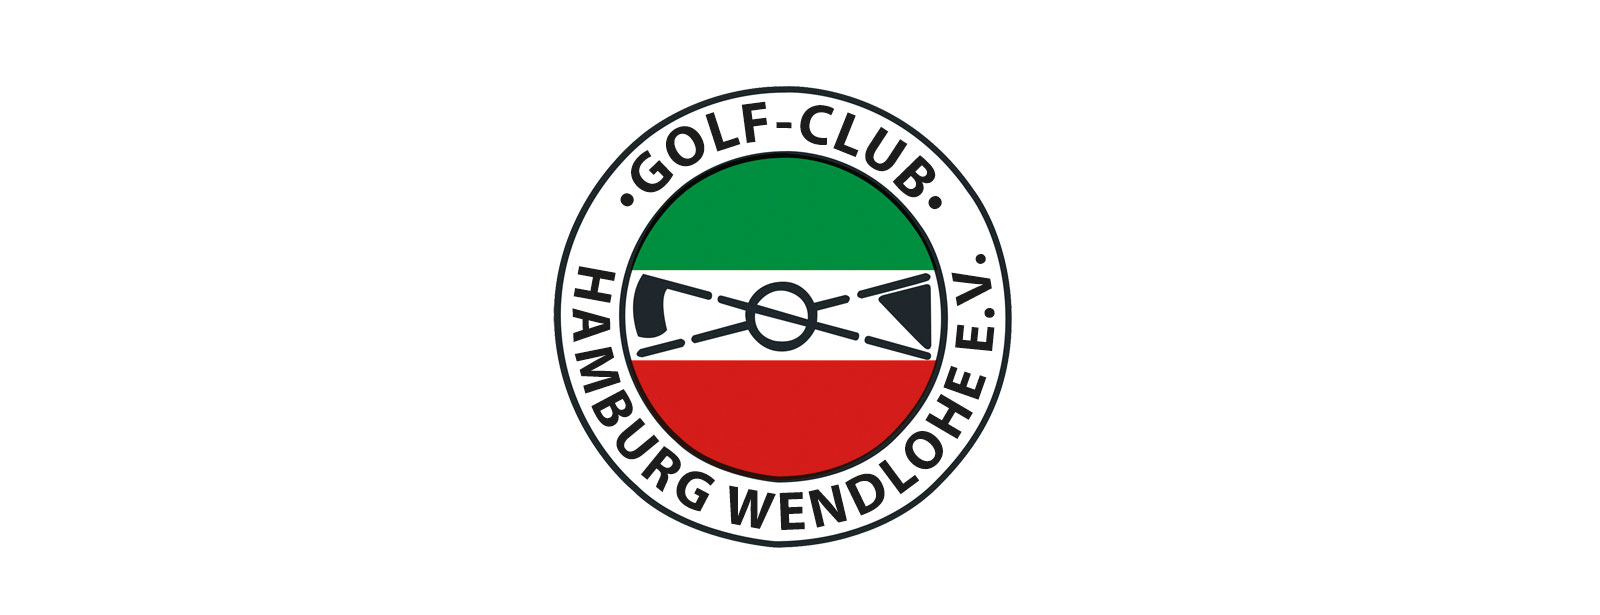 Kooperationspartner | Golf-Club Hamburg Wendlohe e. V.